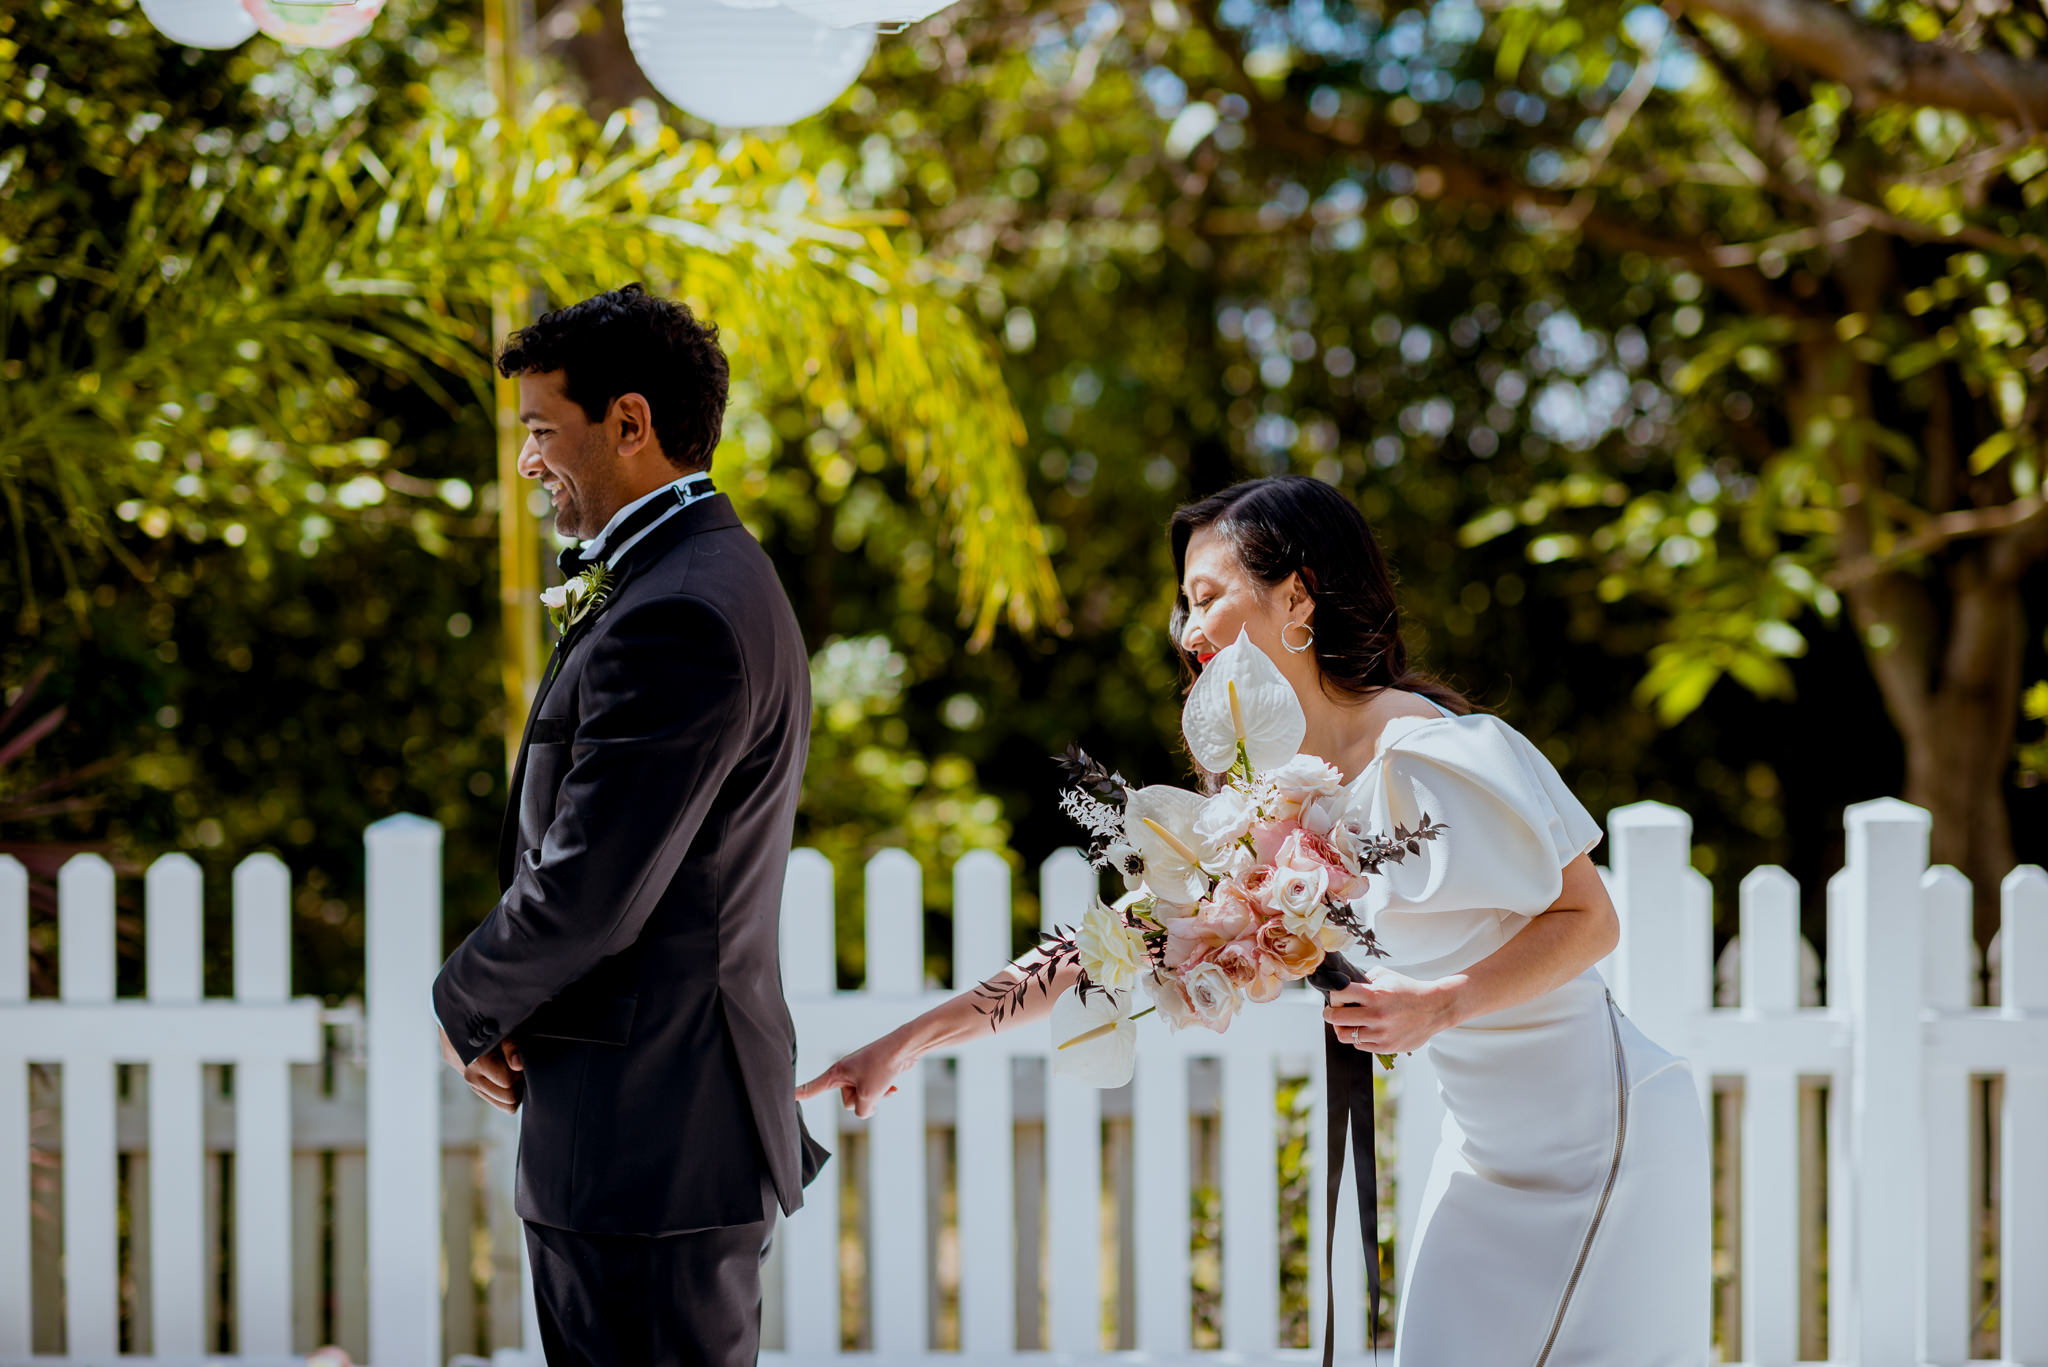 Bride playfully pokes groom's bum in front of a white picket fence